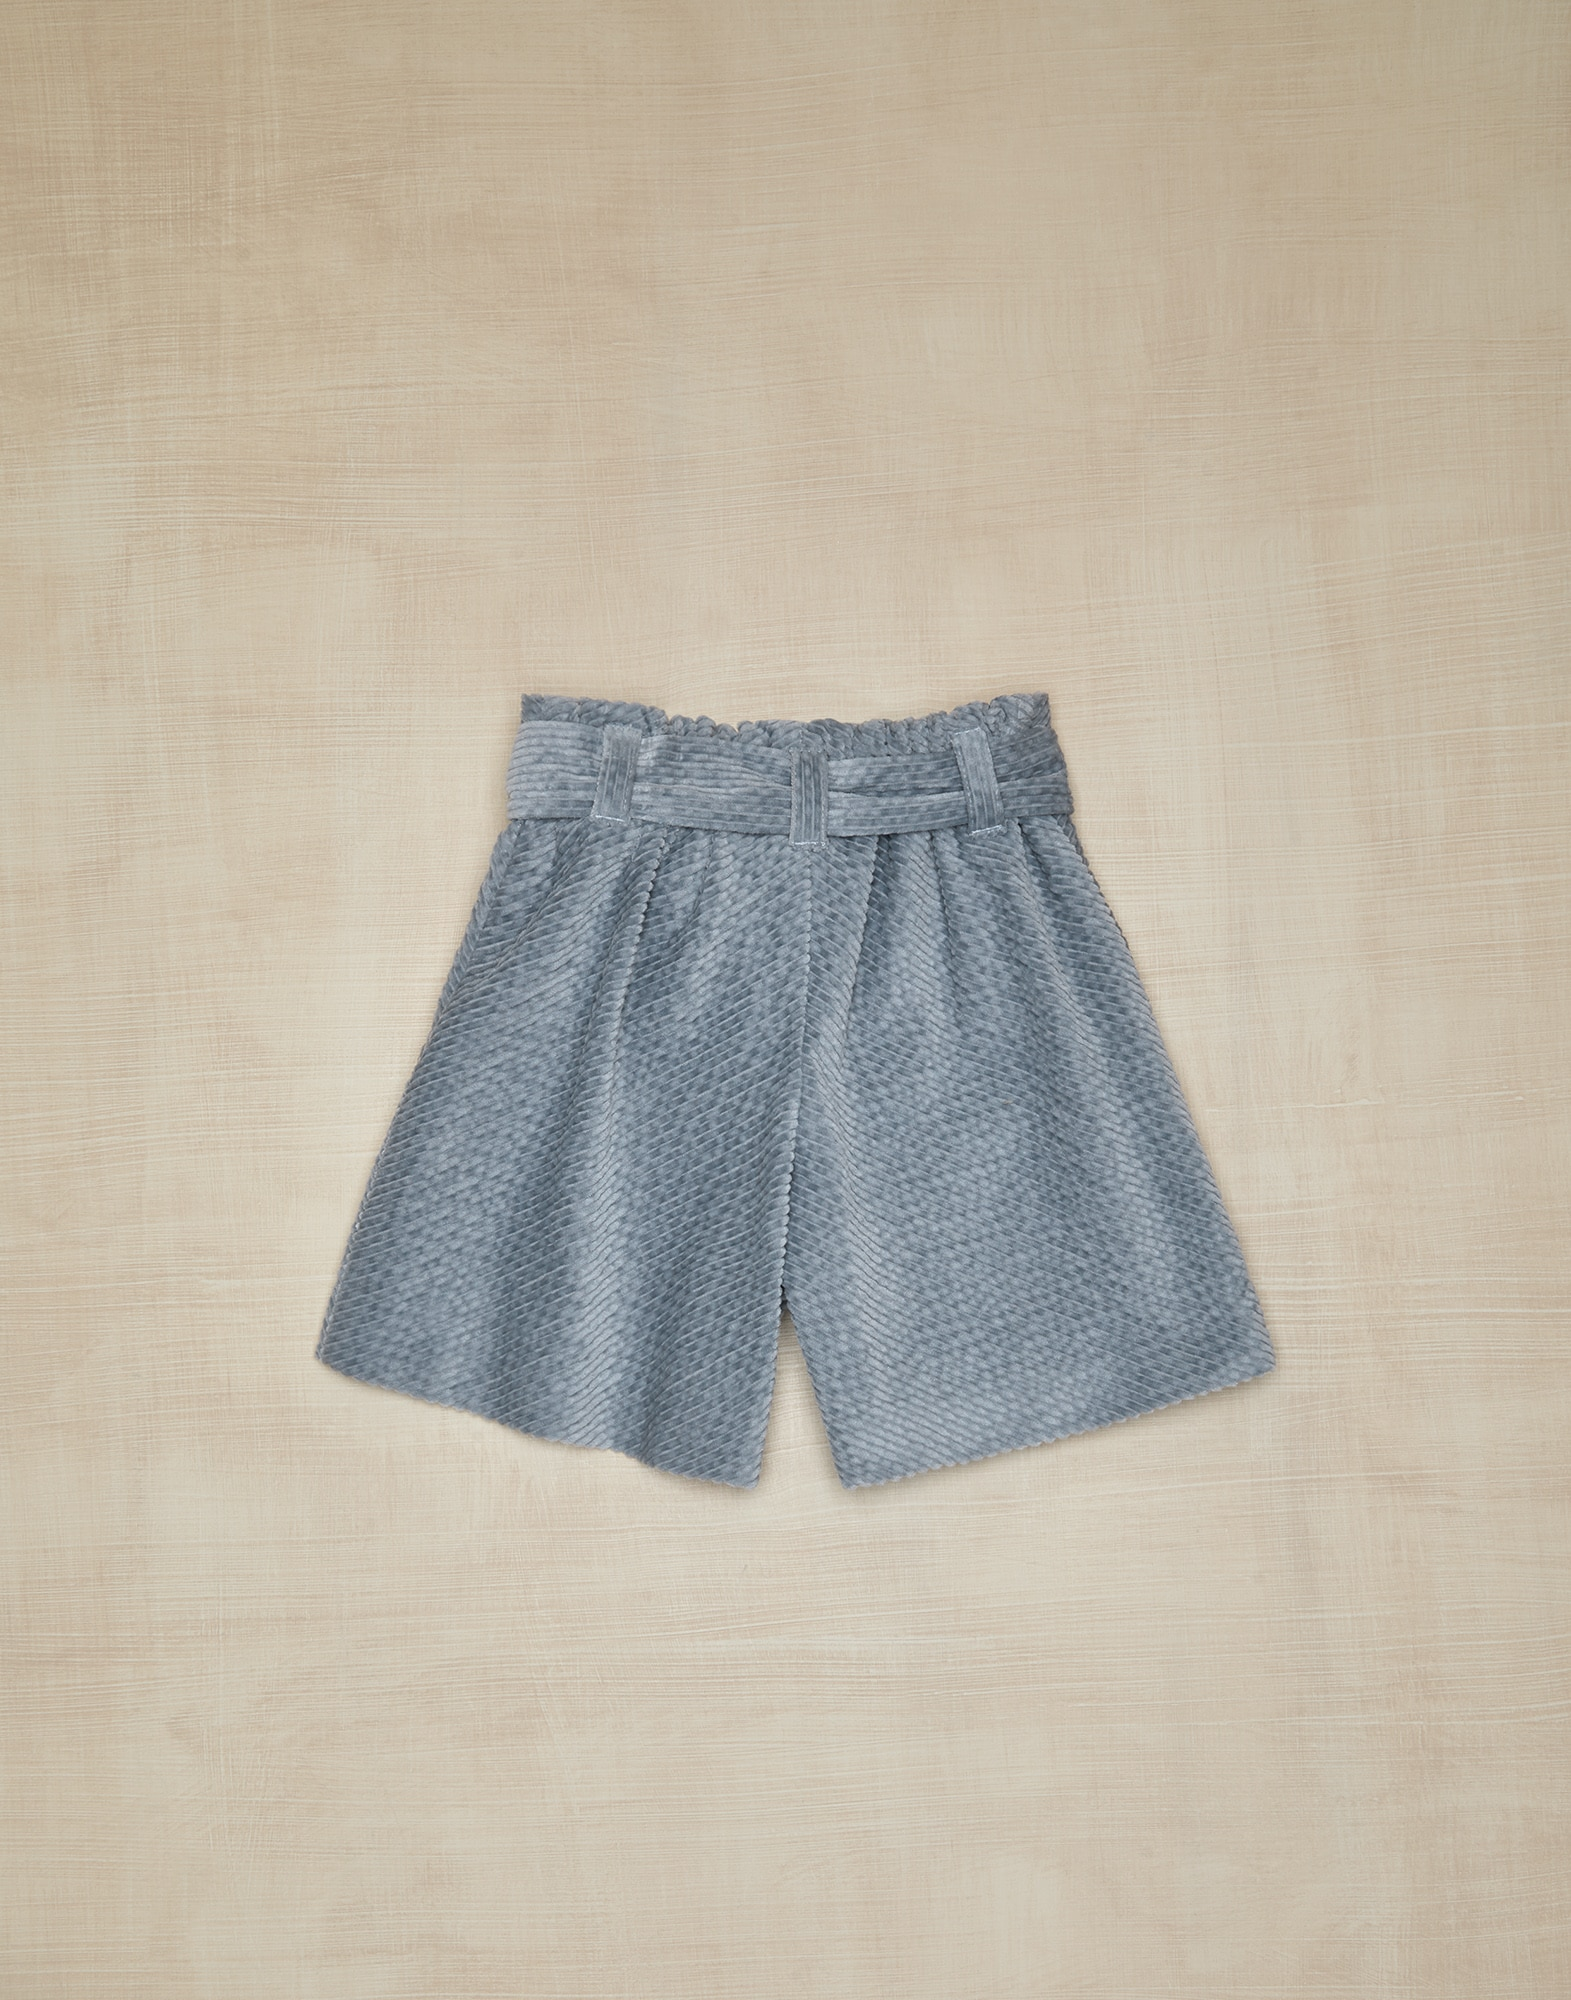 Shorts Indigo Girl 1 - Brunello Cucinelli